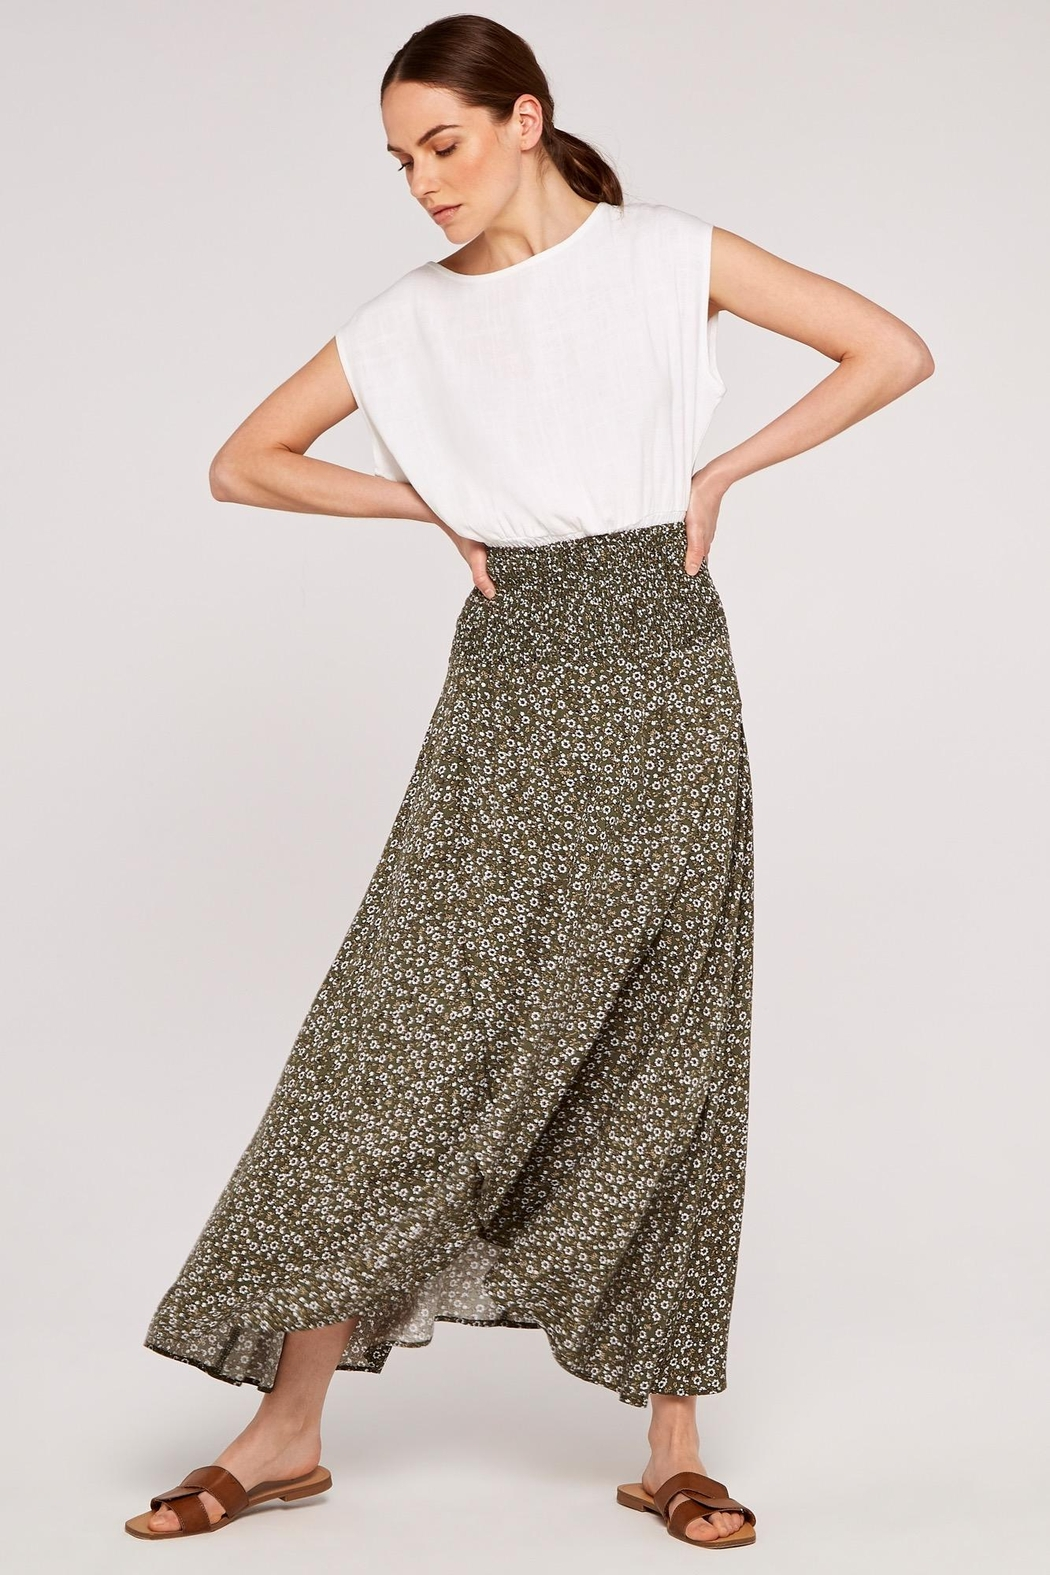 Apricot Ditsy Floral Wrap Skirt - Main Image